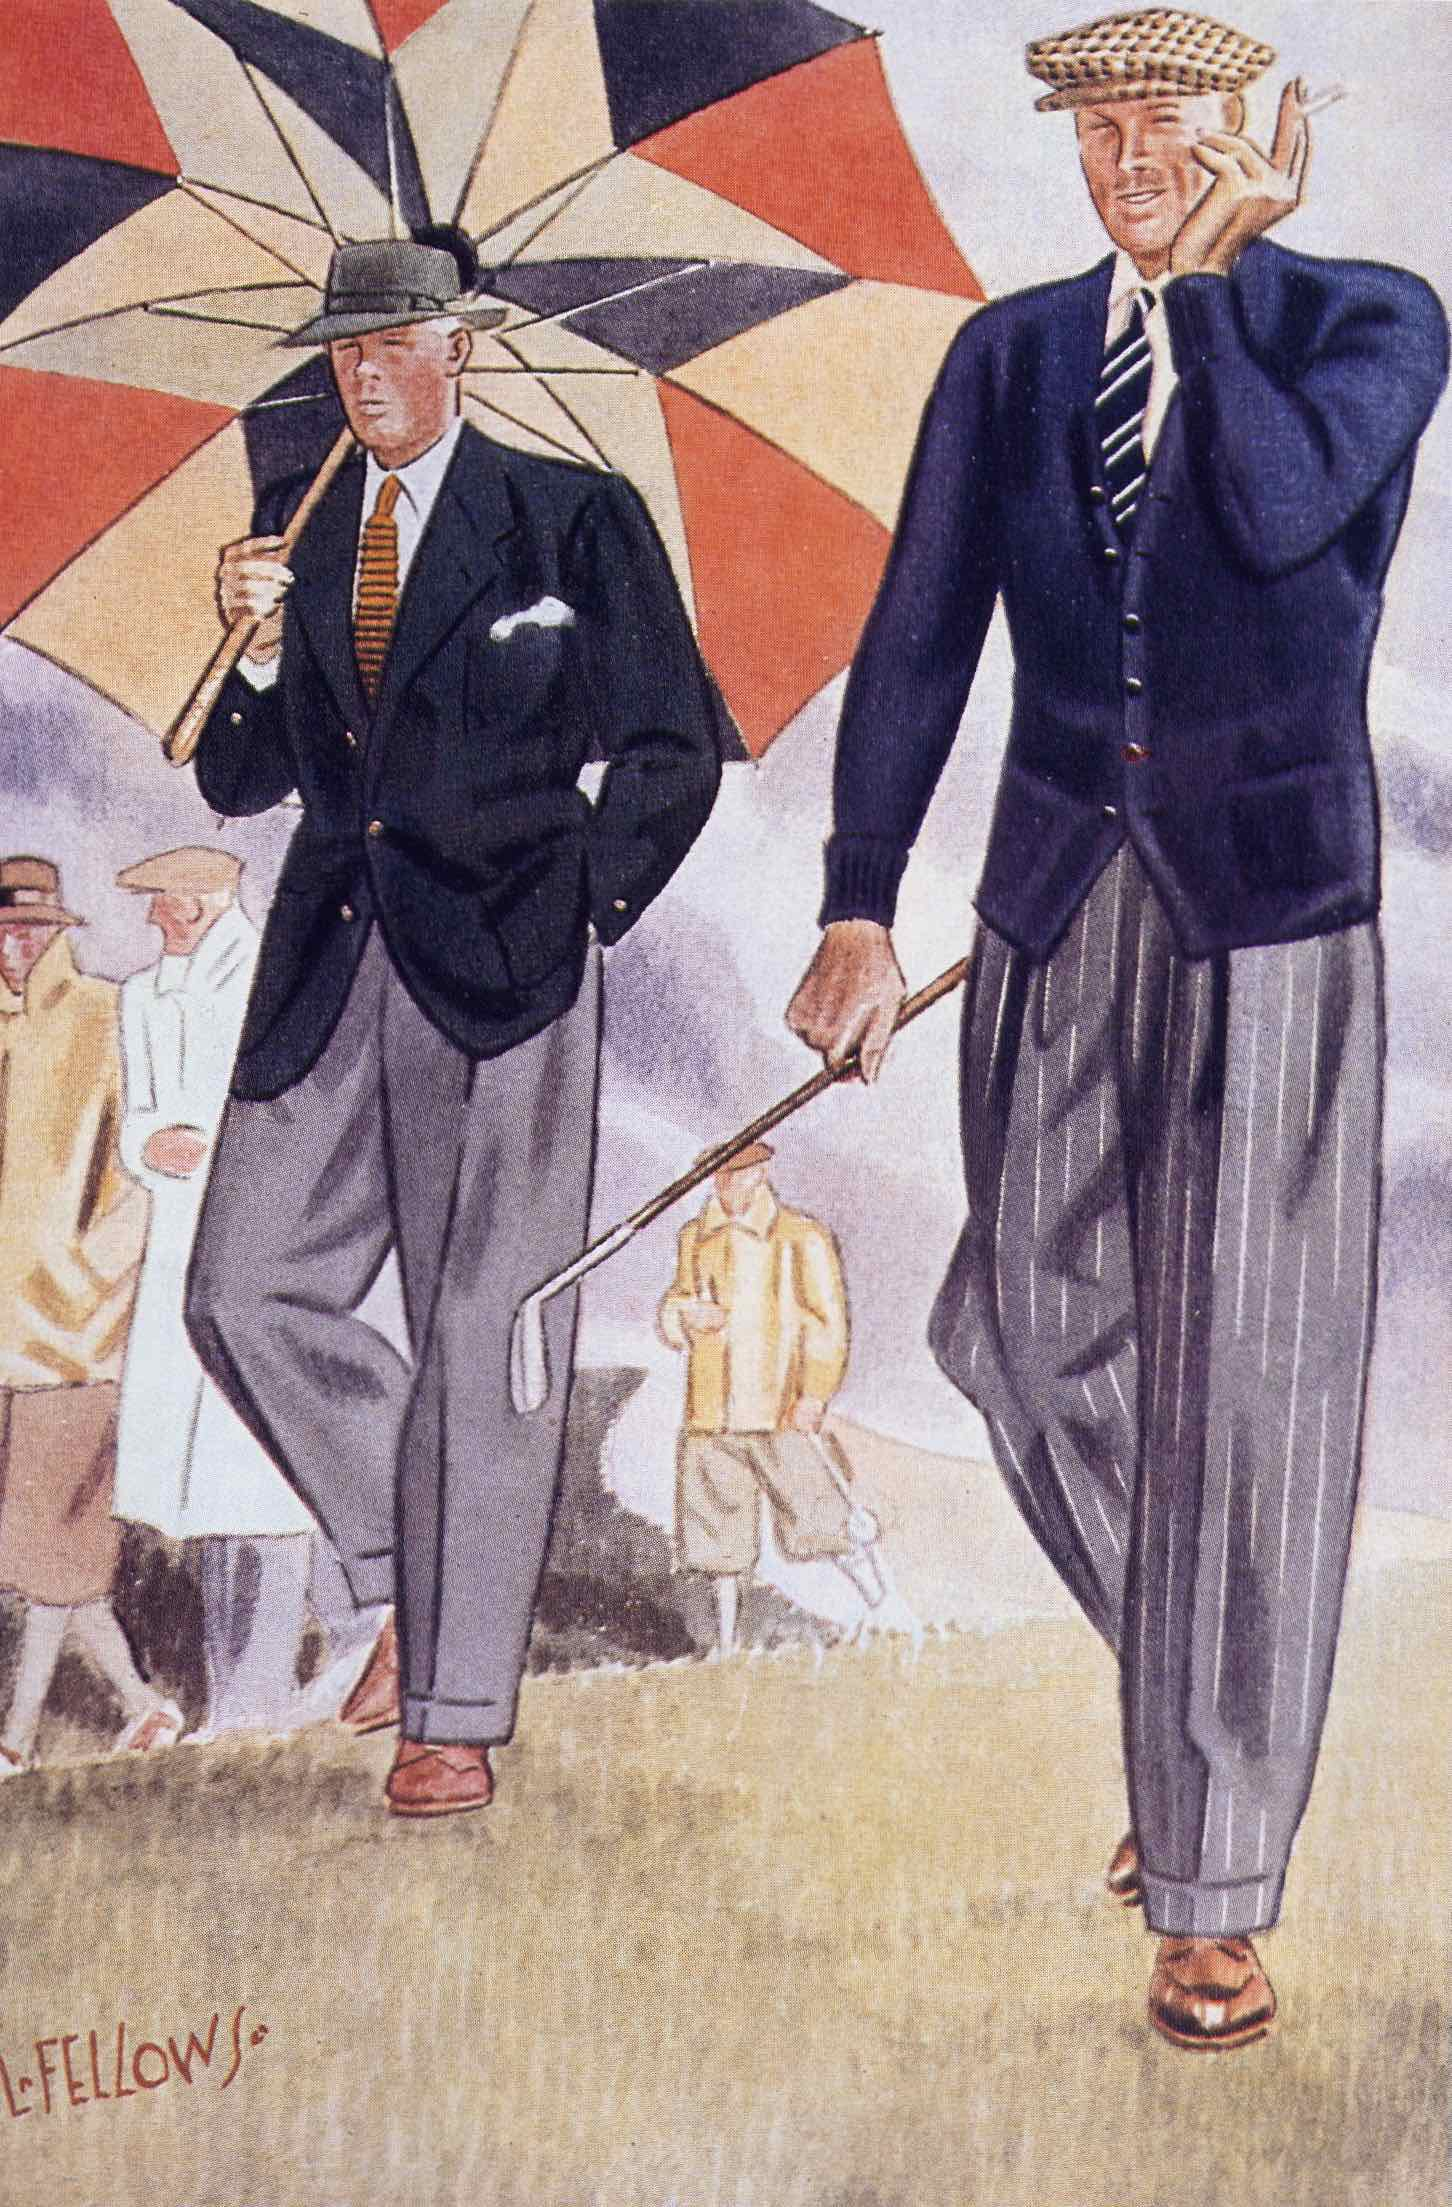 A classic Apparel Arts golfing garb illustration by the great Laurence Fellowes.